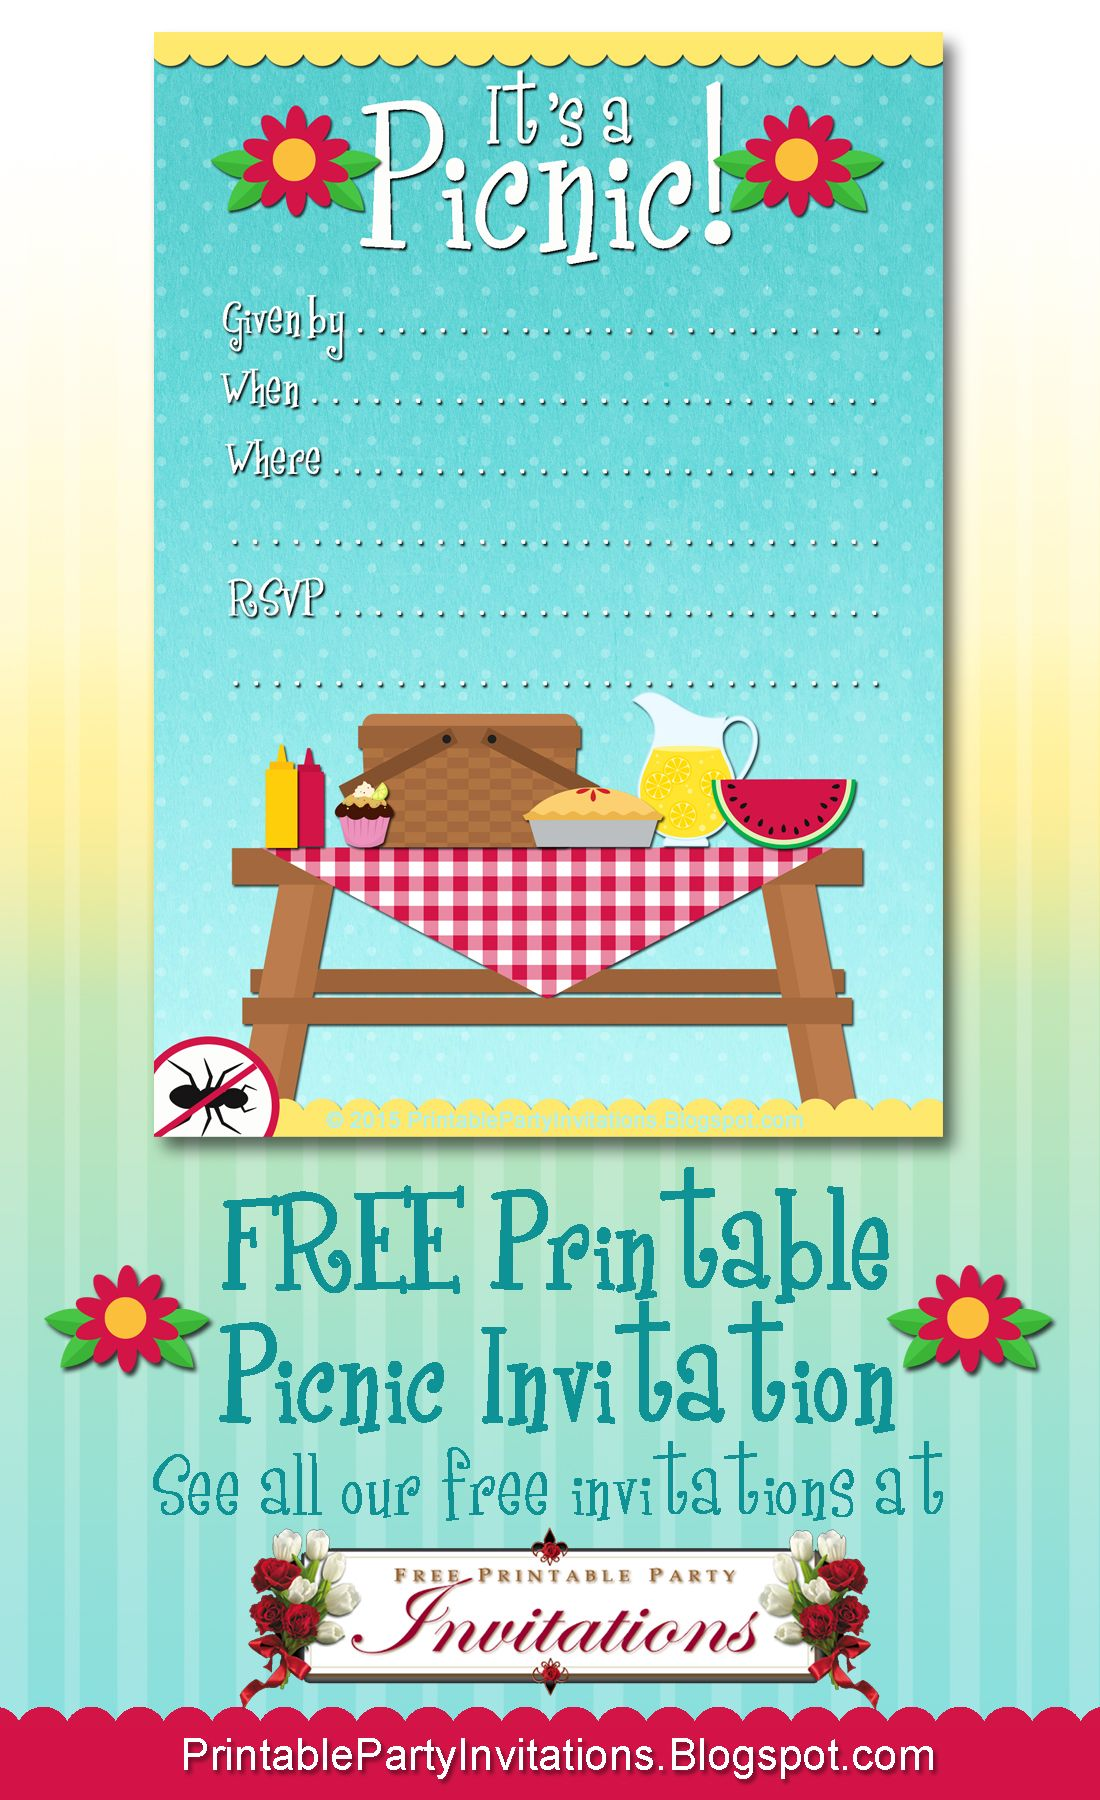 photo regarding Free Printable Picnic Invitation Template identified as Totally free Printable Picnic Invitation Social gathering Printables Picnic